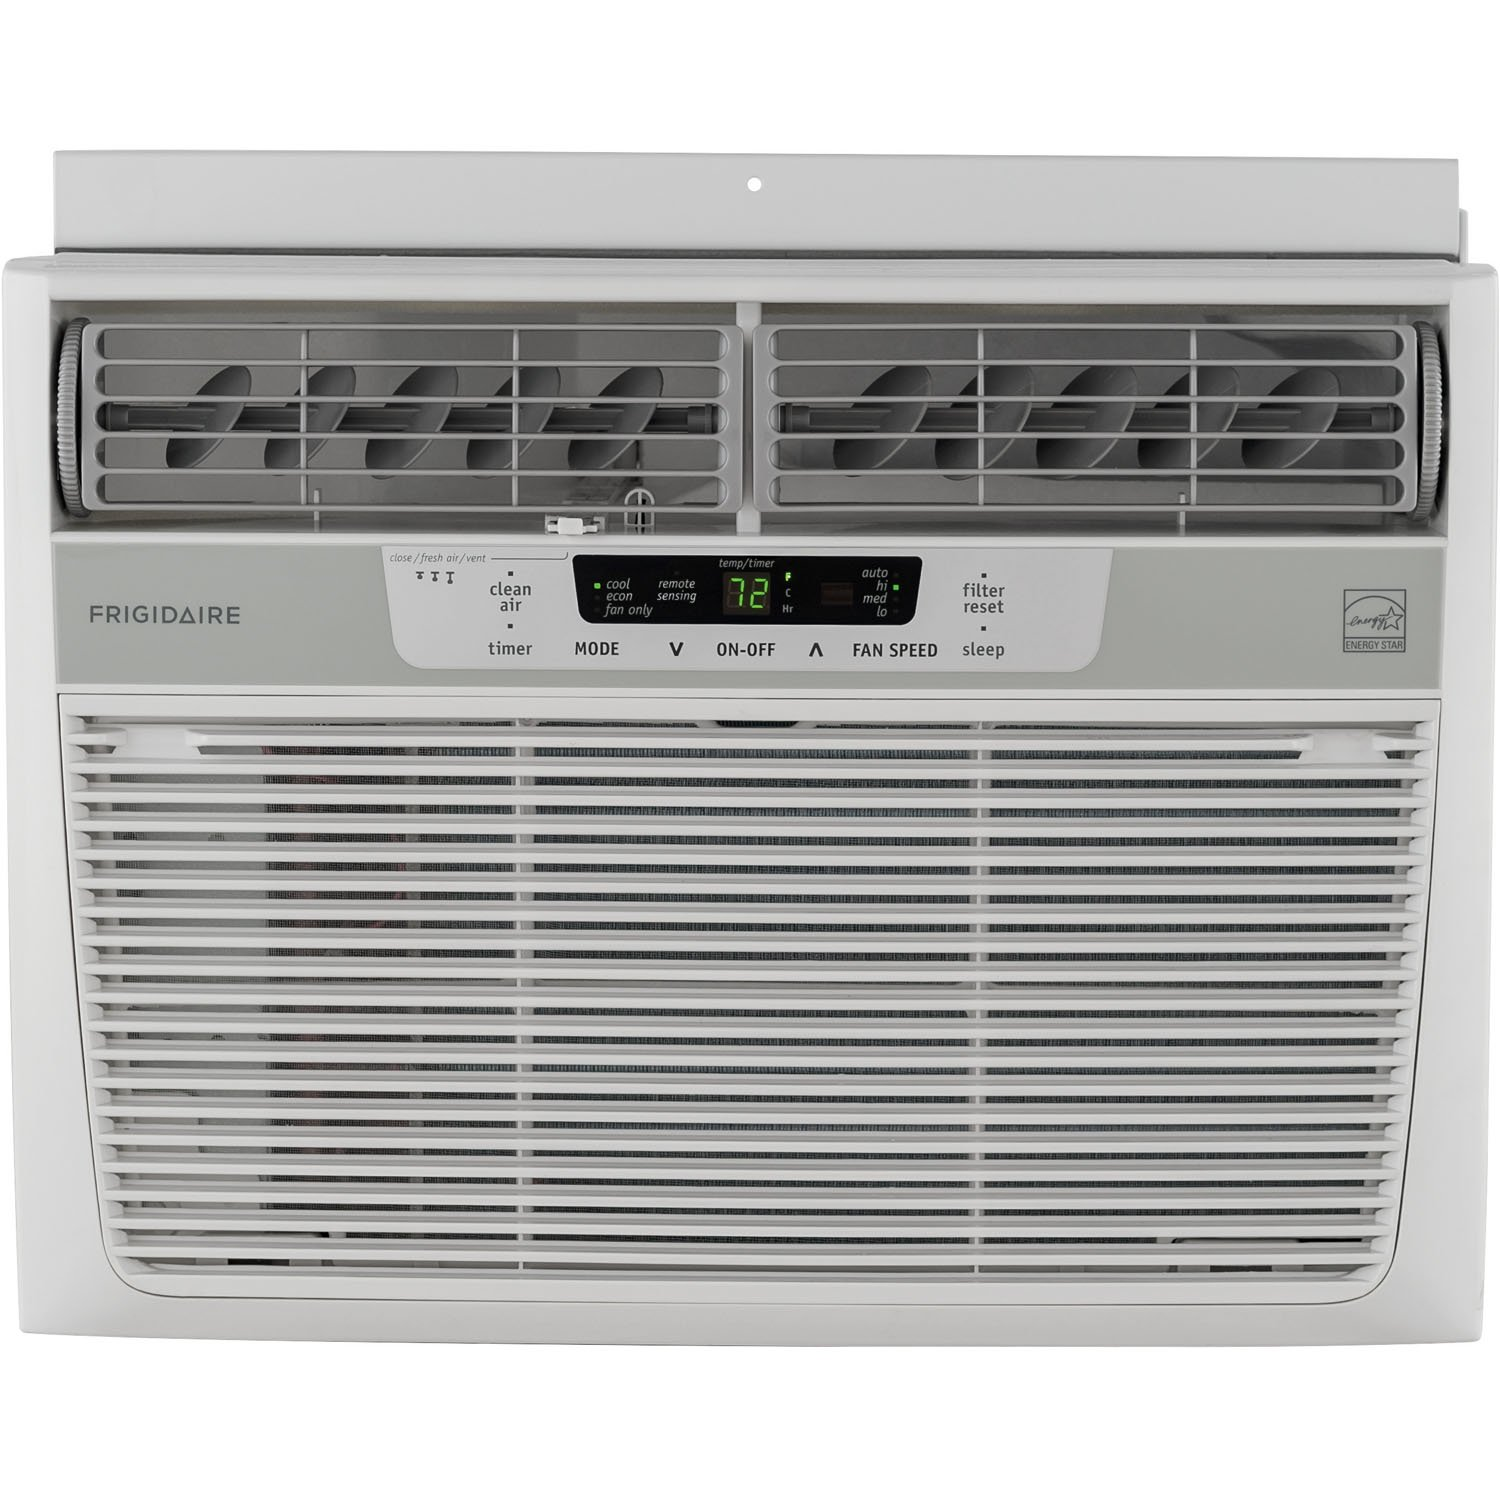 Frigidaire FFRE1033Q1 10,000 BTU 115V Window-Mounted Compact Air Conditioner